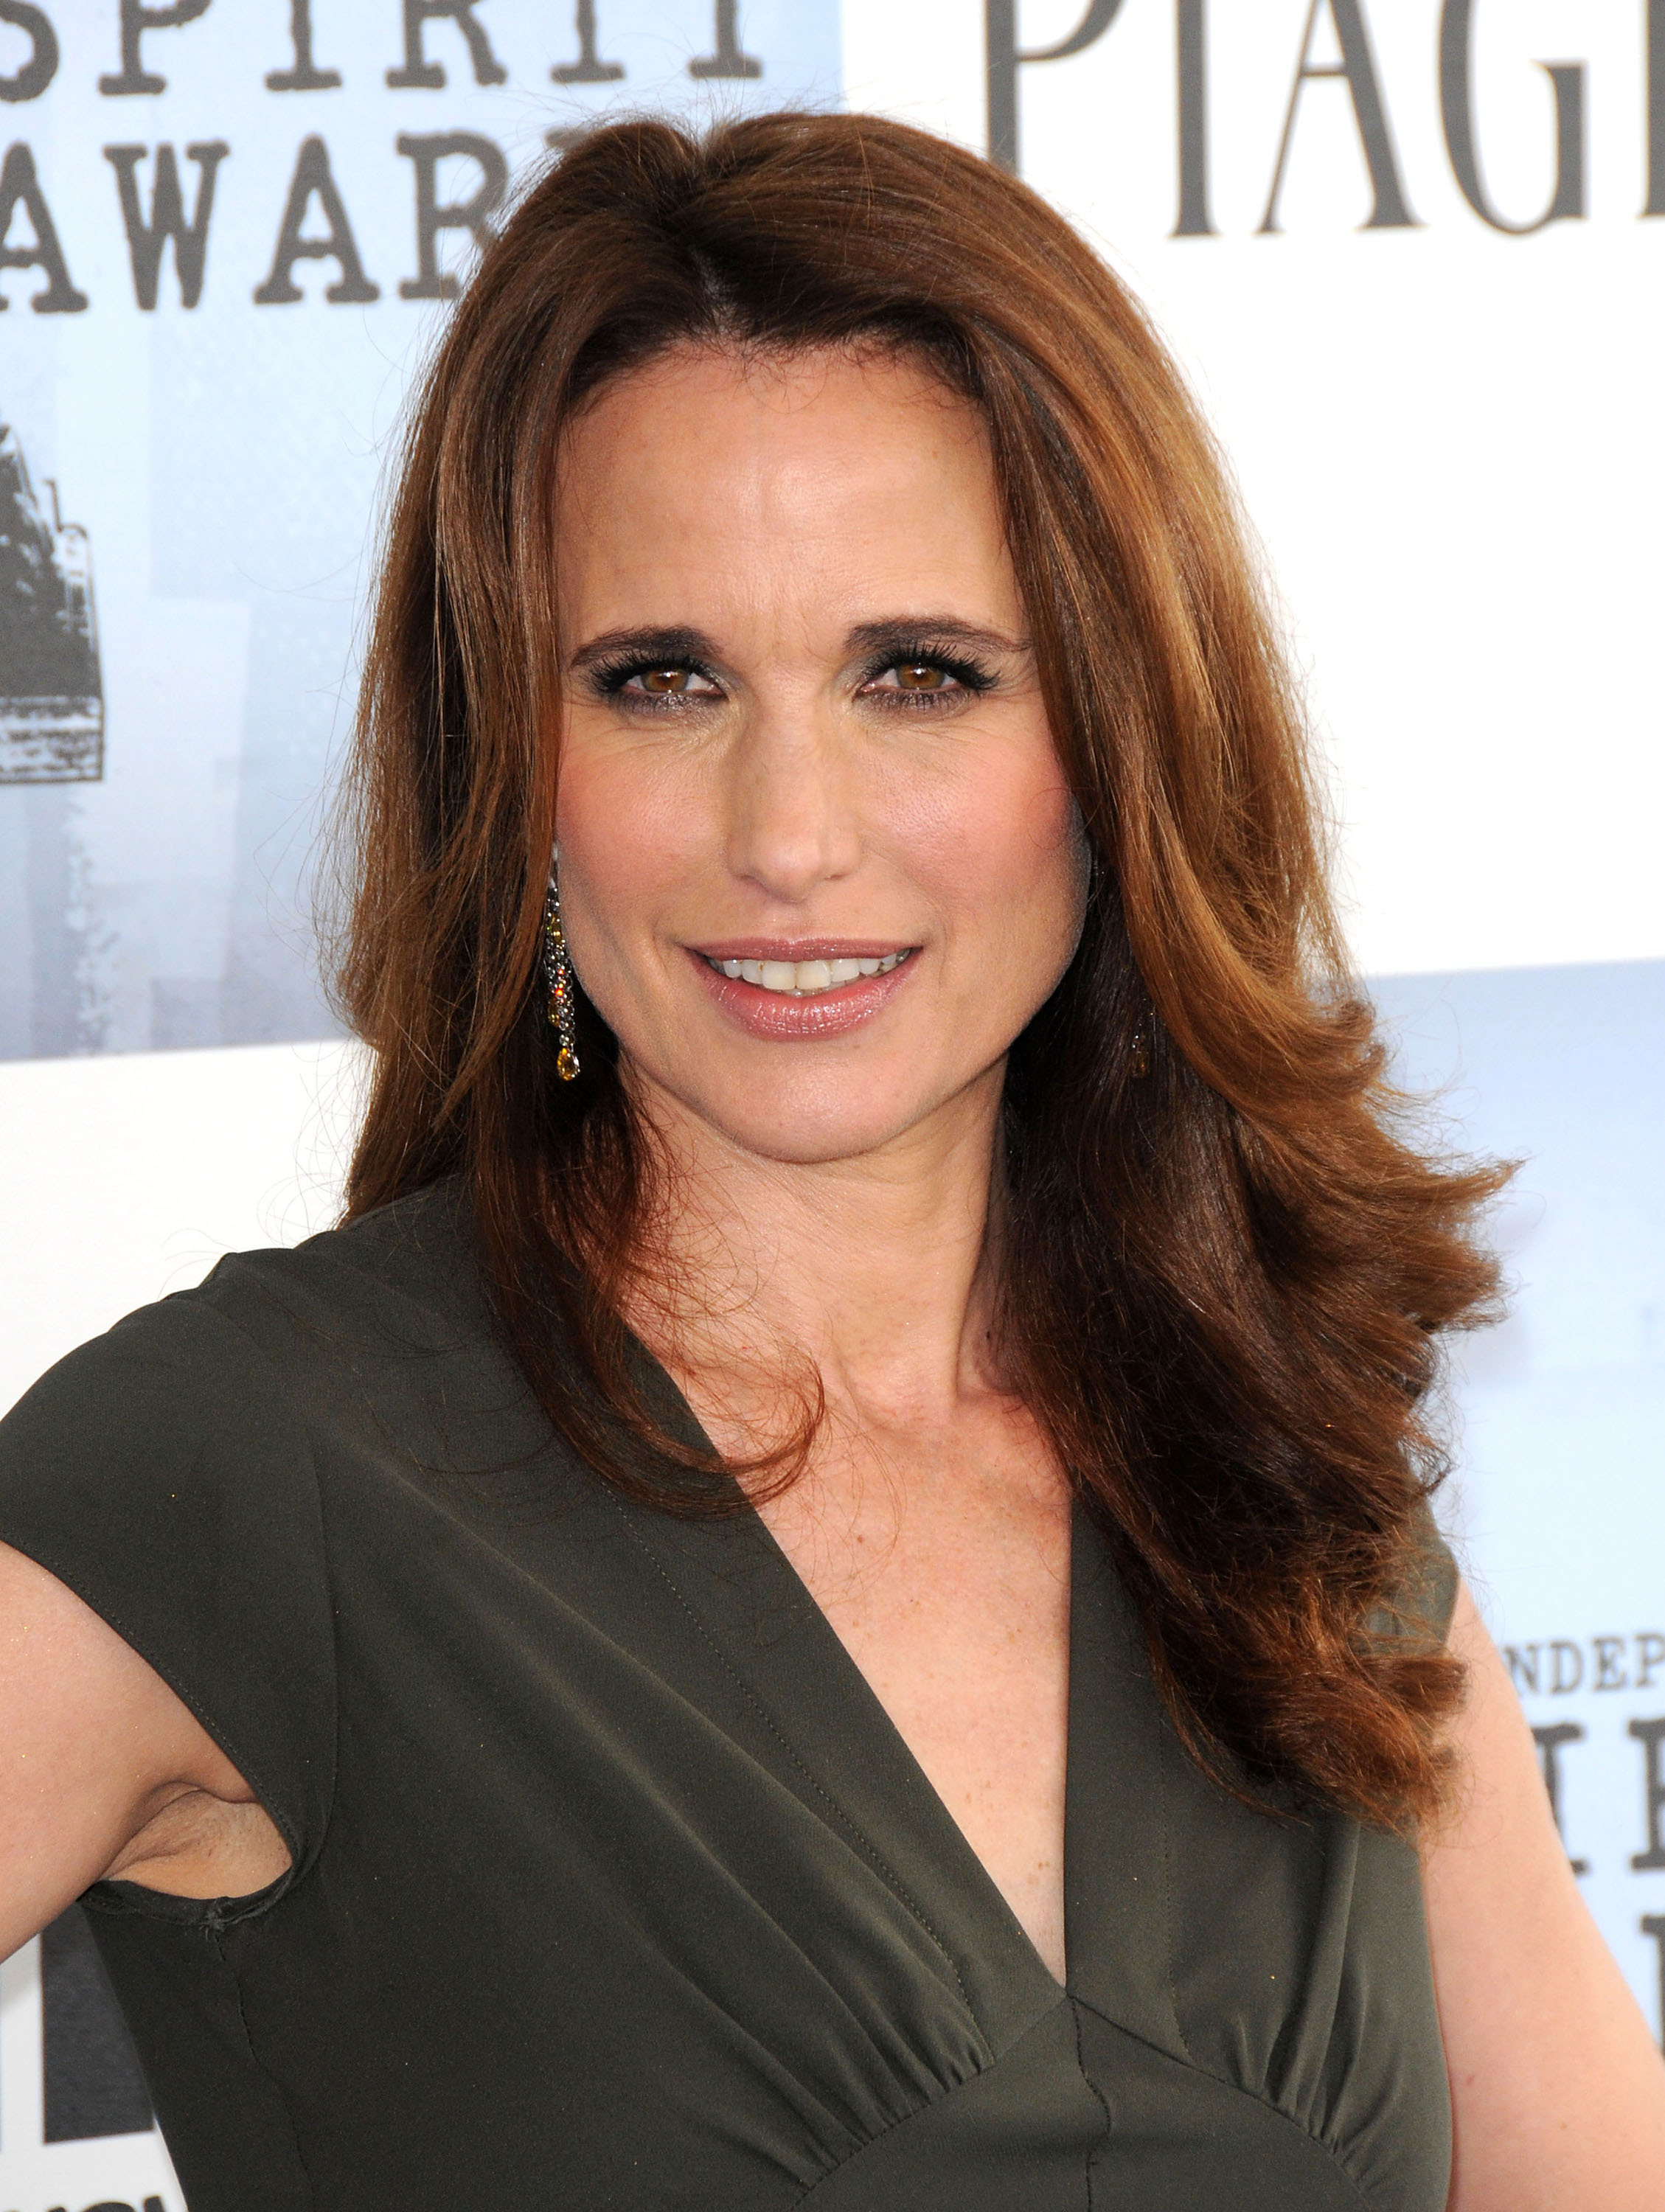 Some people will disagree, but I've always found Andie MacDowell to be ...